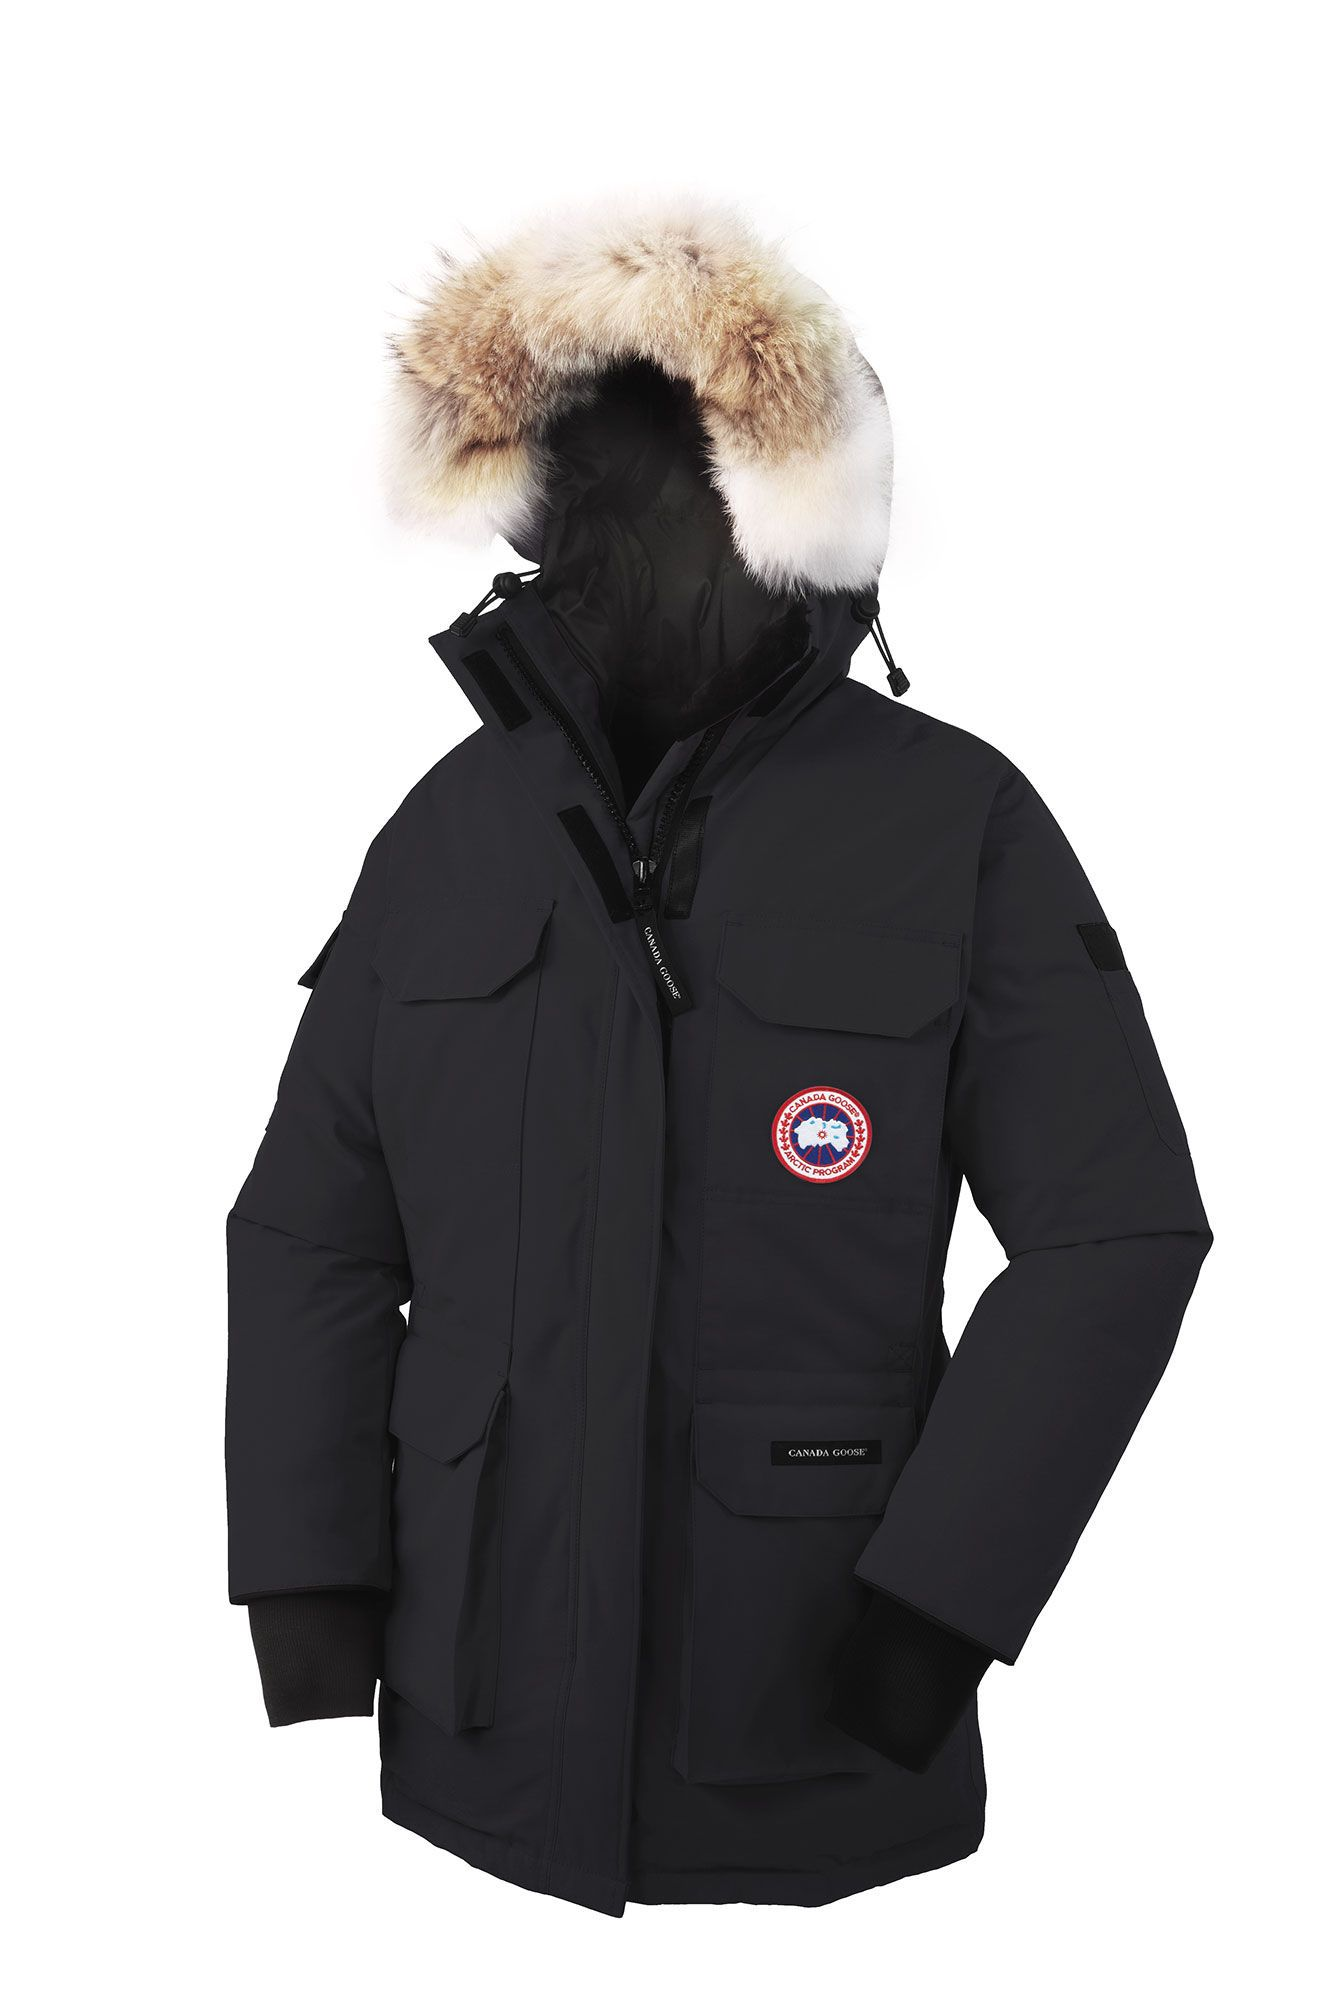 Womens Arctic Program Expedition Parka  7ceeddac7